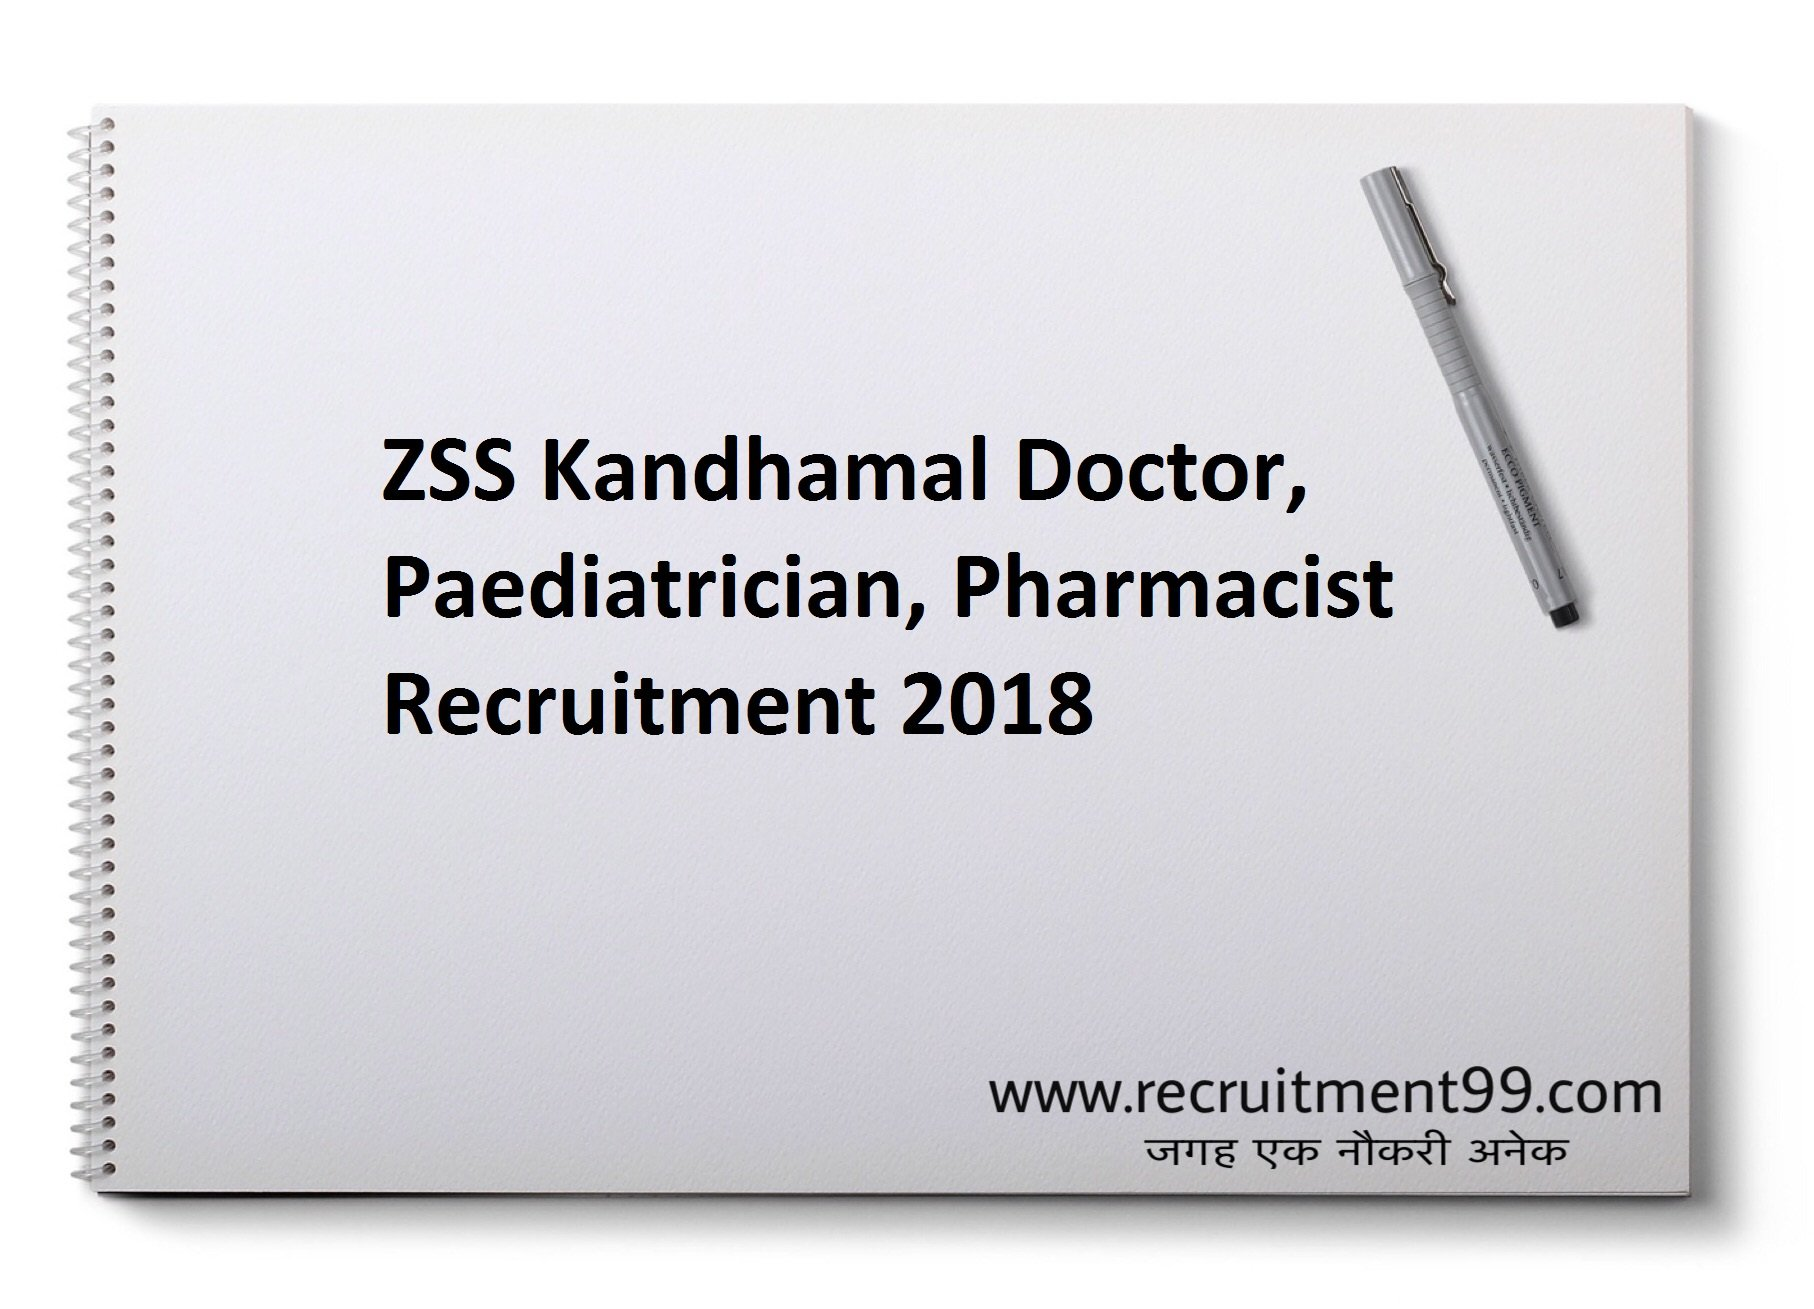 ZSS Kandhamal Doctor, Pediatrician, Pharmacist Recruitment Admit Card Result 2018